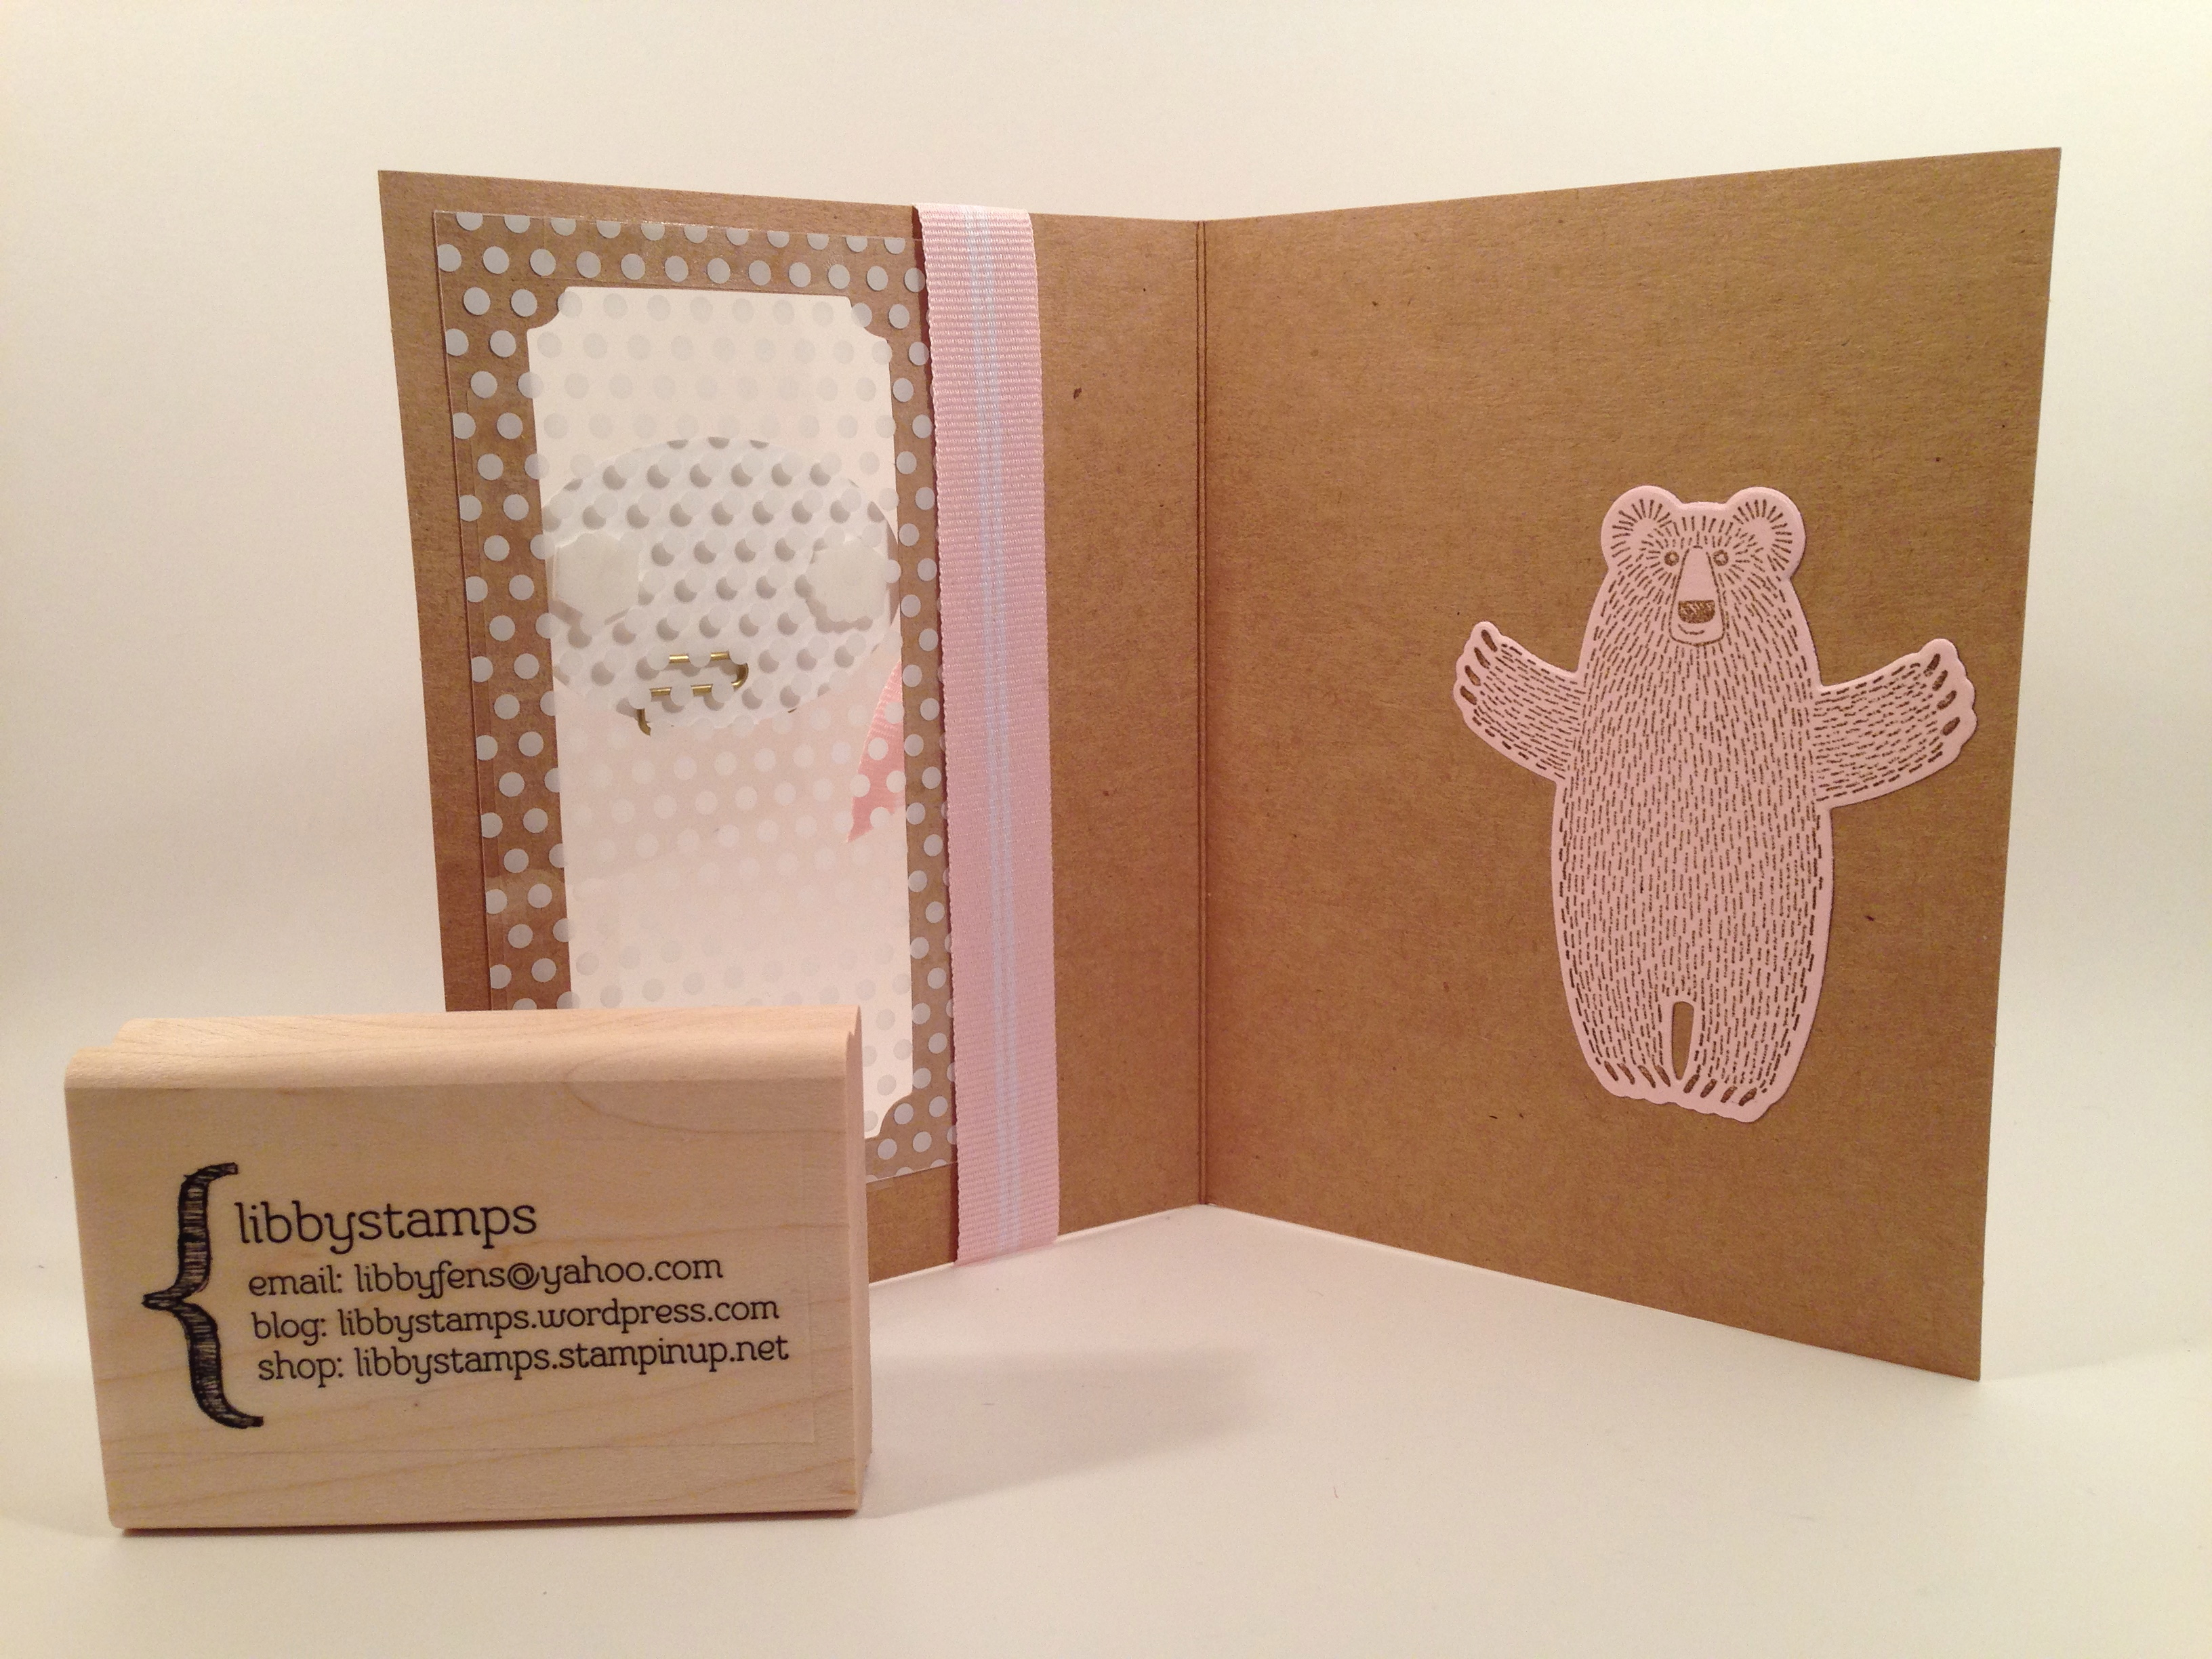 libbystamps, stampin up, Suite Sayings, Bear Hugs Framelits, Bear Hugs, Tin of  Cards, Bow Paper Clips